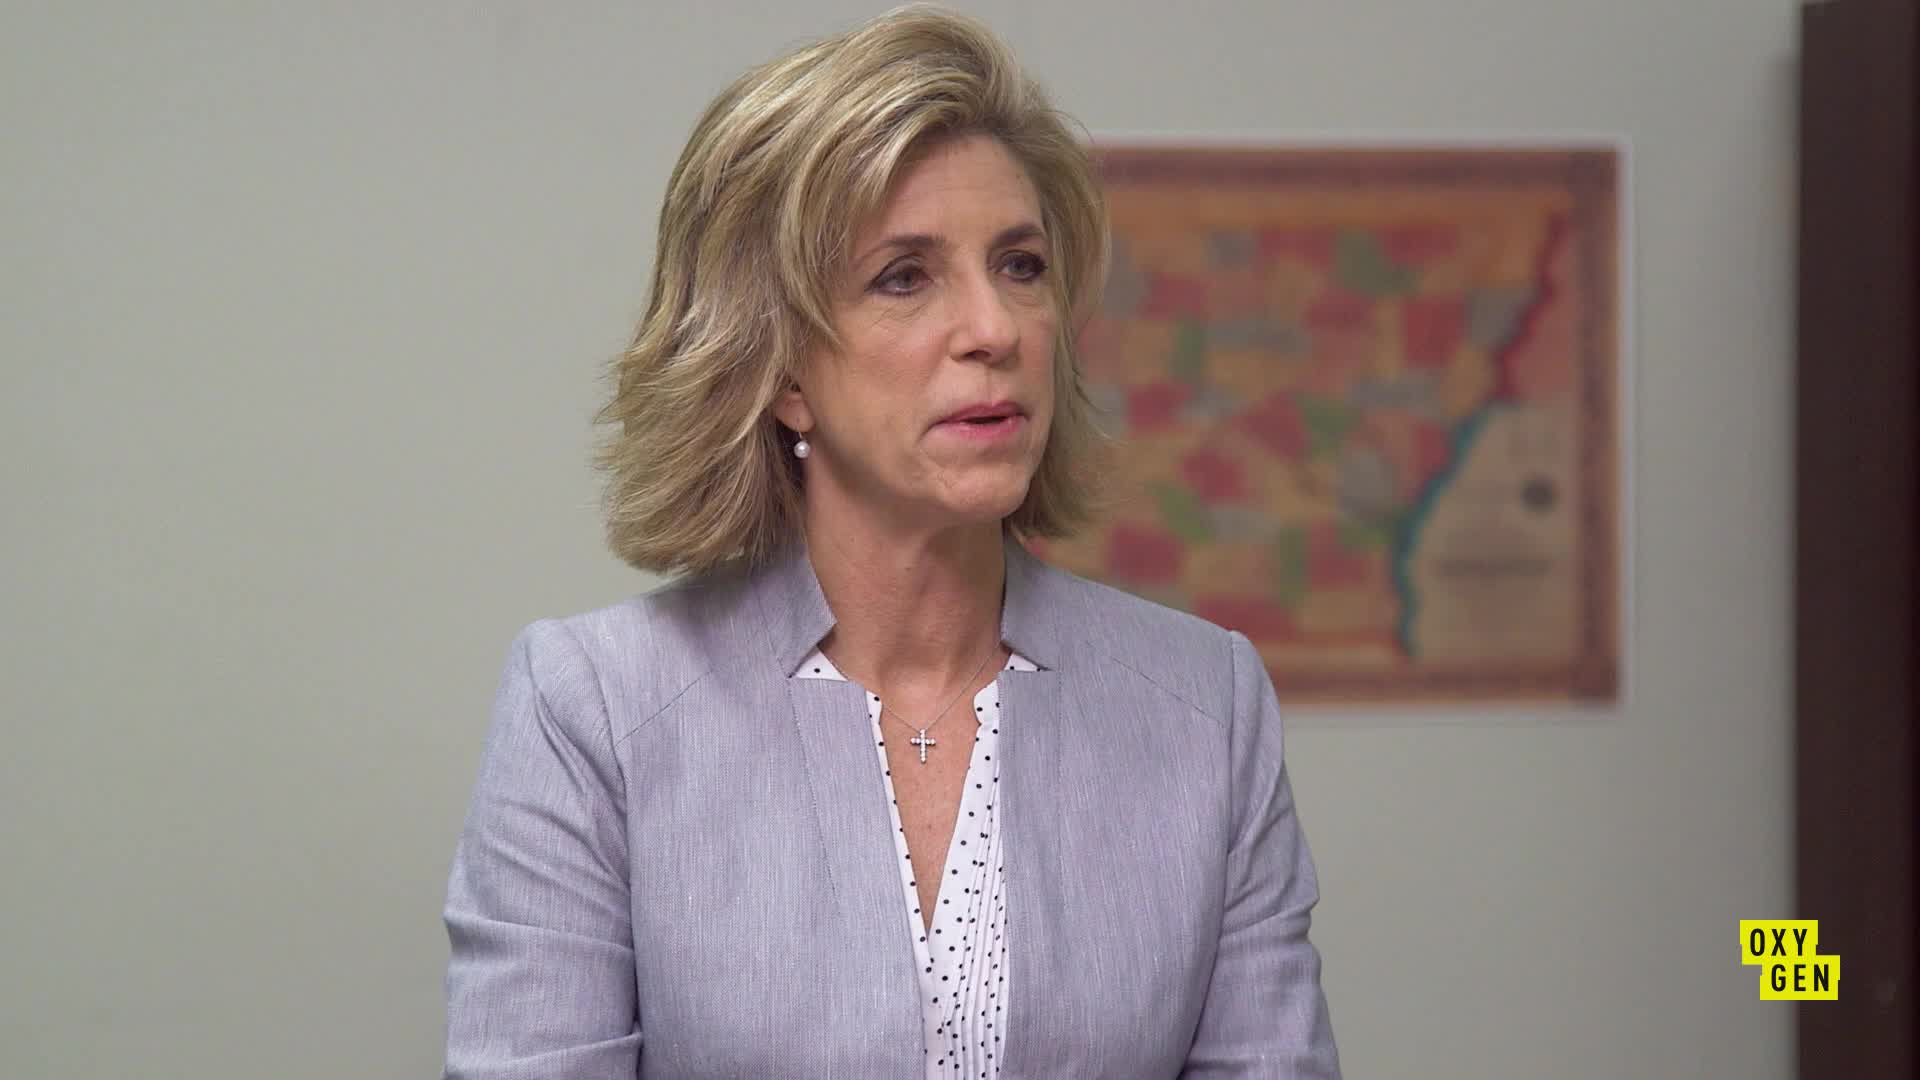 Cold Justice Returns on March 14th